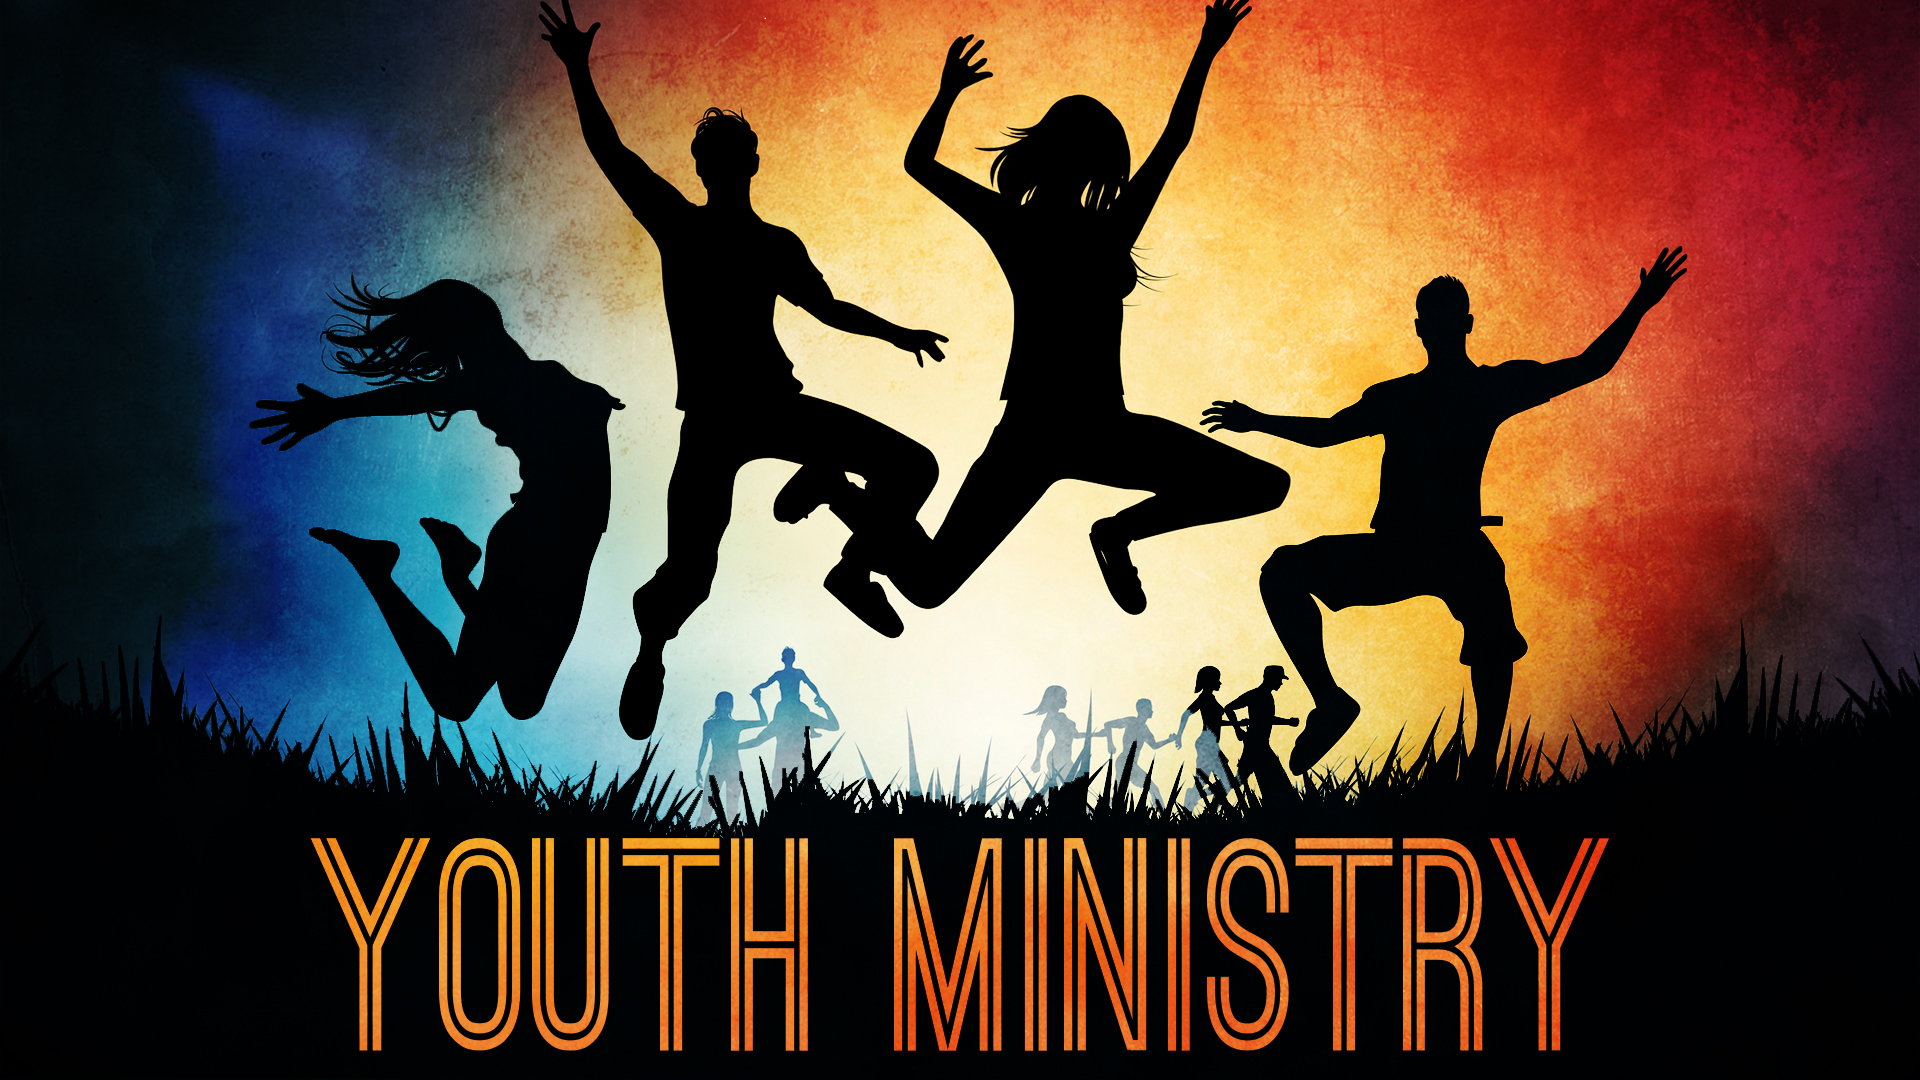 church youth backgrounds - photo #9